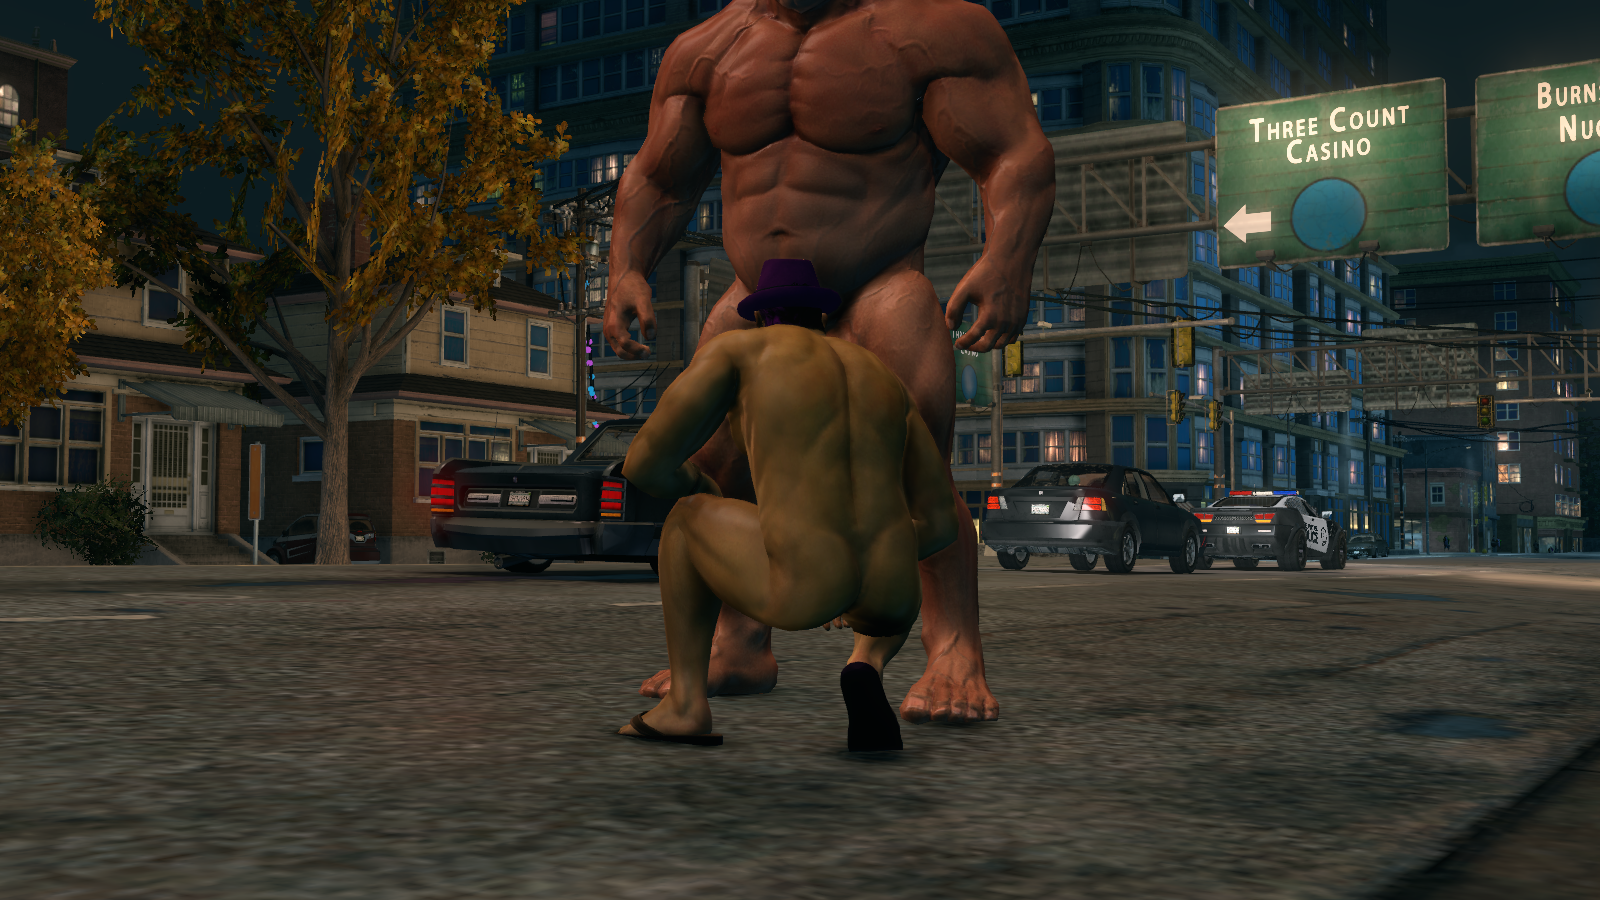 Saints row 2 nude unblurred glitch sexy pics